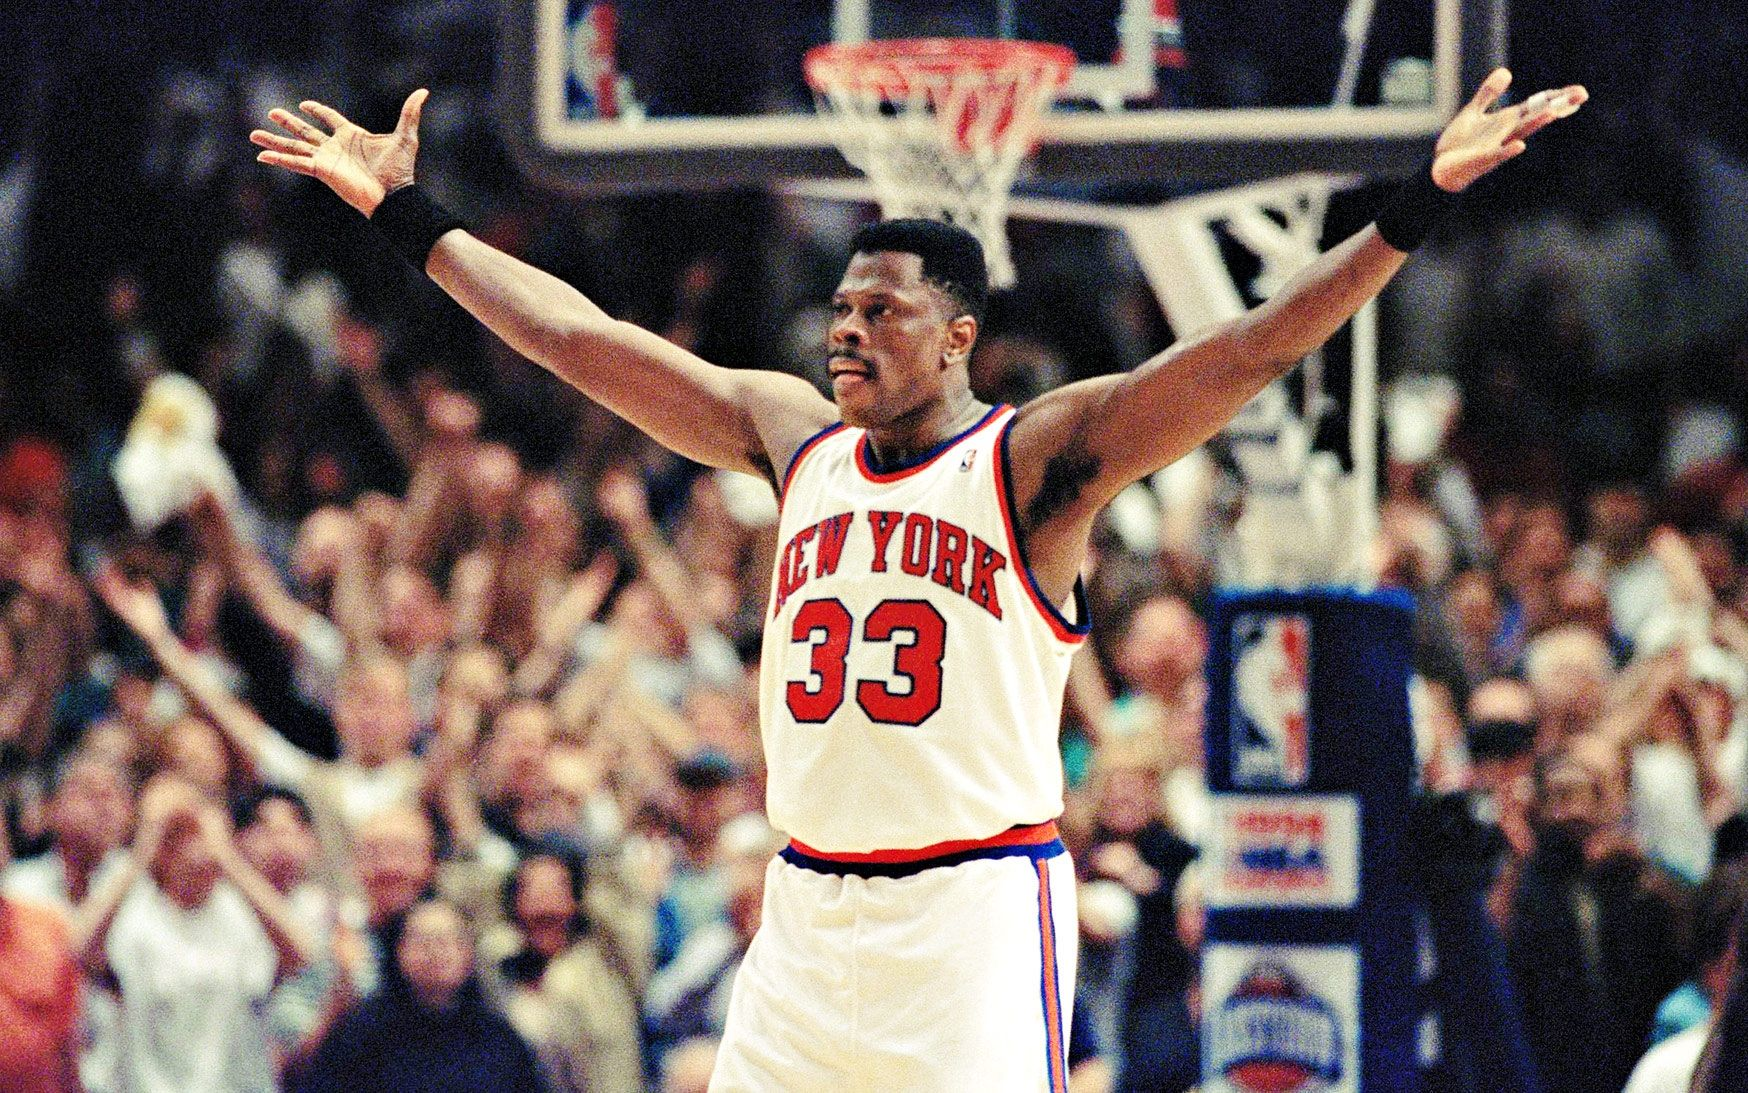 Veteran S Day Holds A Special Place In The Annals Of Nba History For Centers New York Knicks Patrick Ewing Knicks